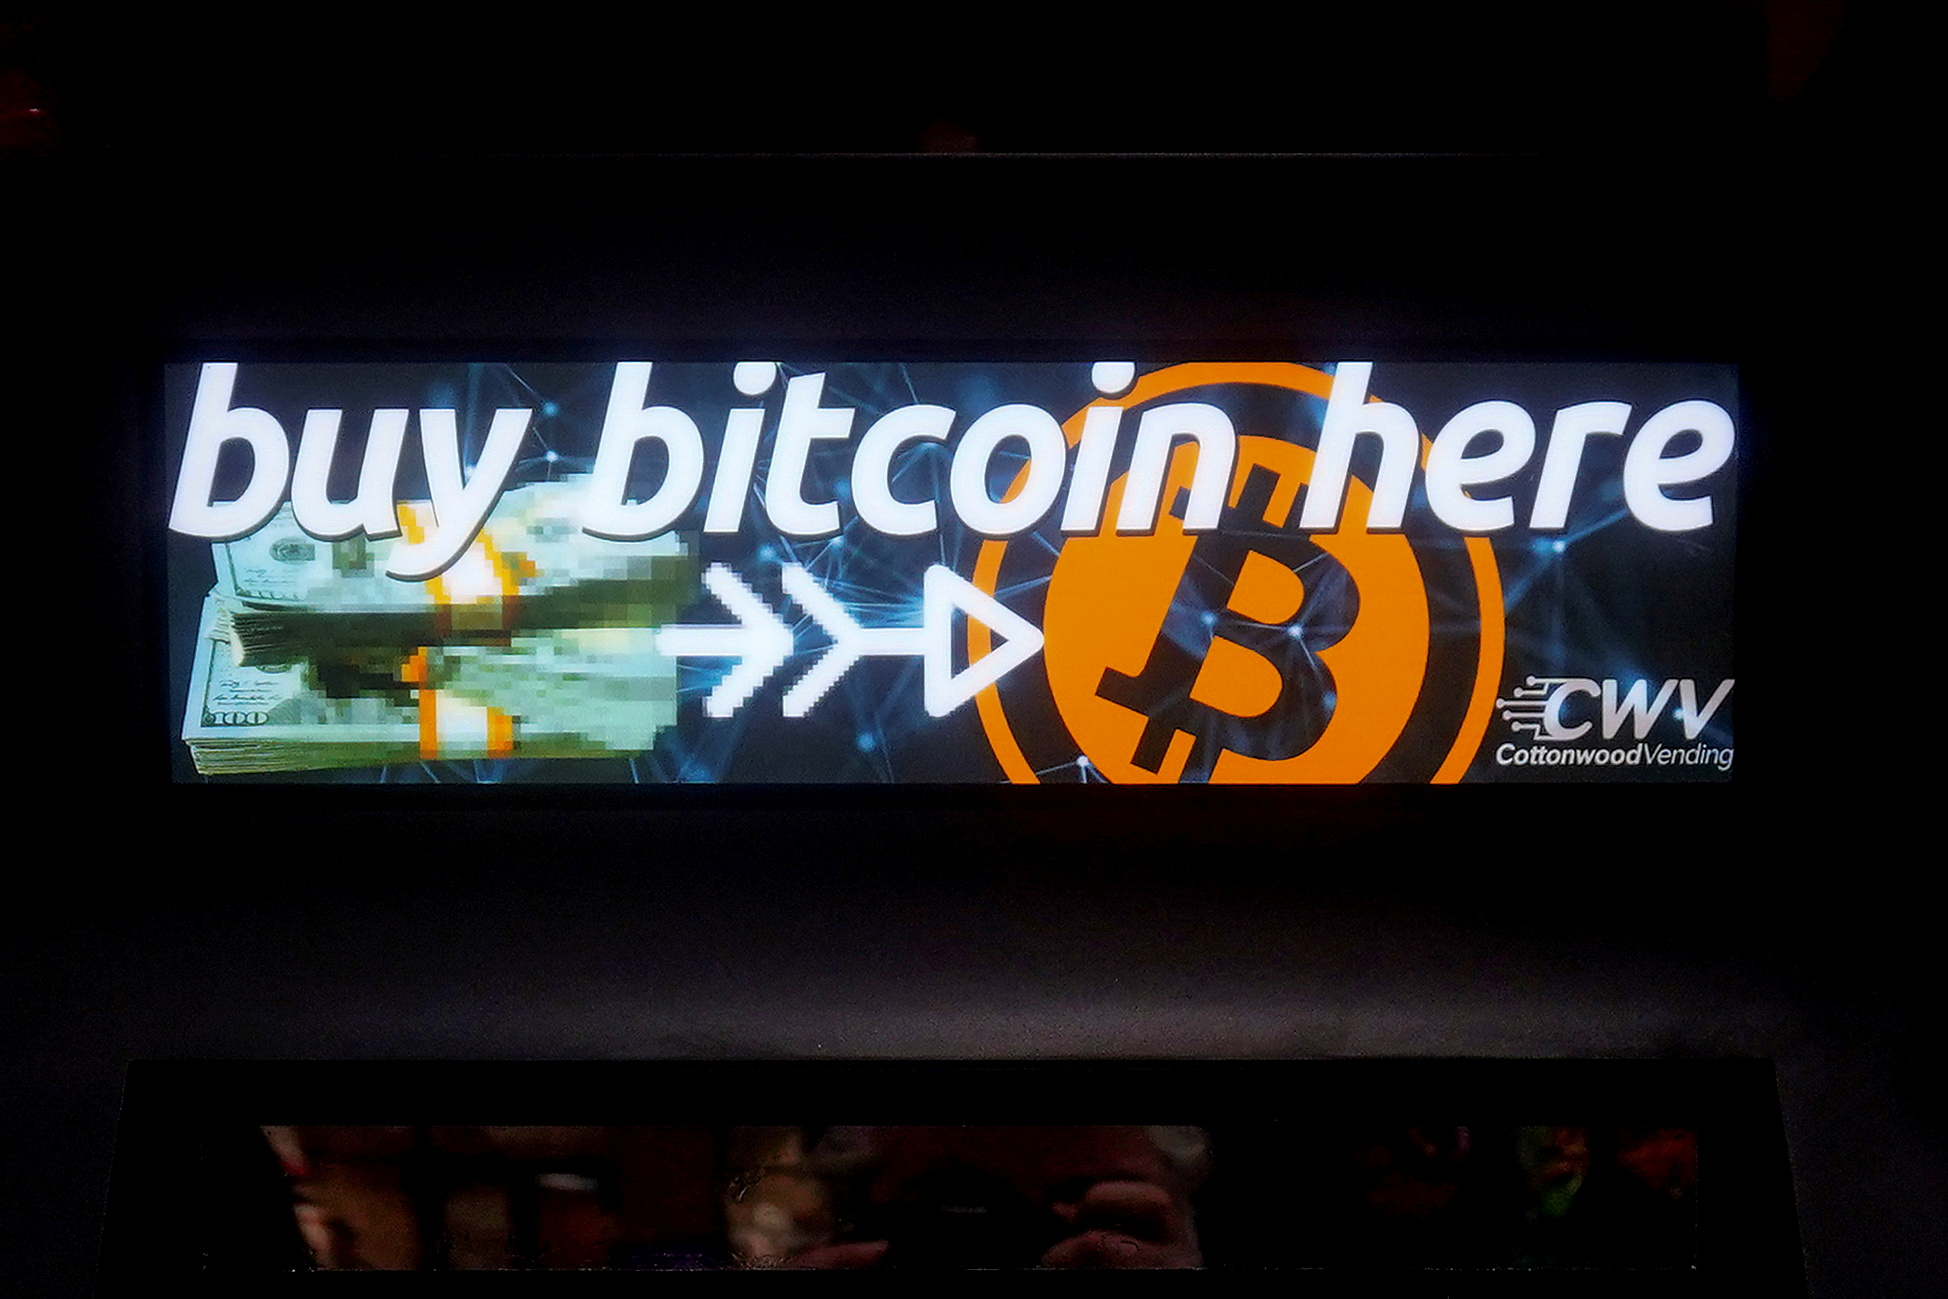 A Bitcoin ATM sign is pictured in a bodega in the Manhattan borough of New York City, New York, U.S., February  9, 2021. REUTERS/Carlo Allegri